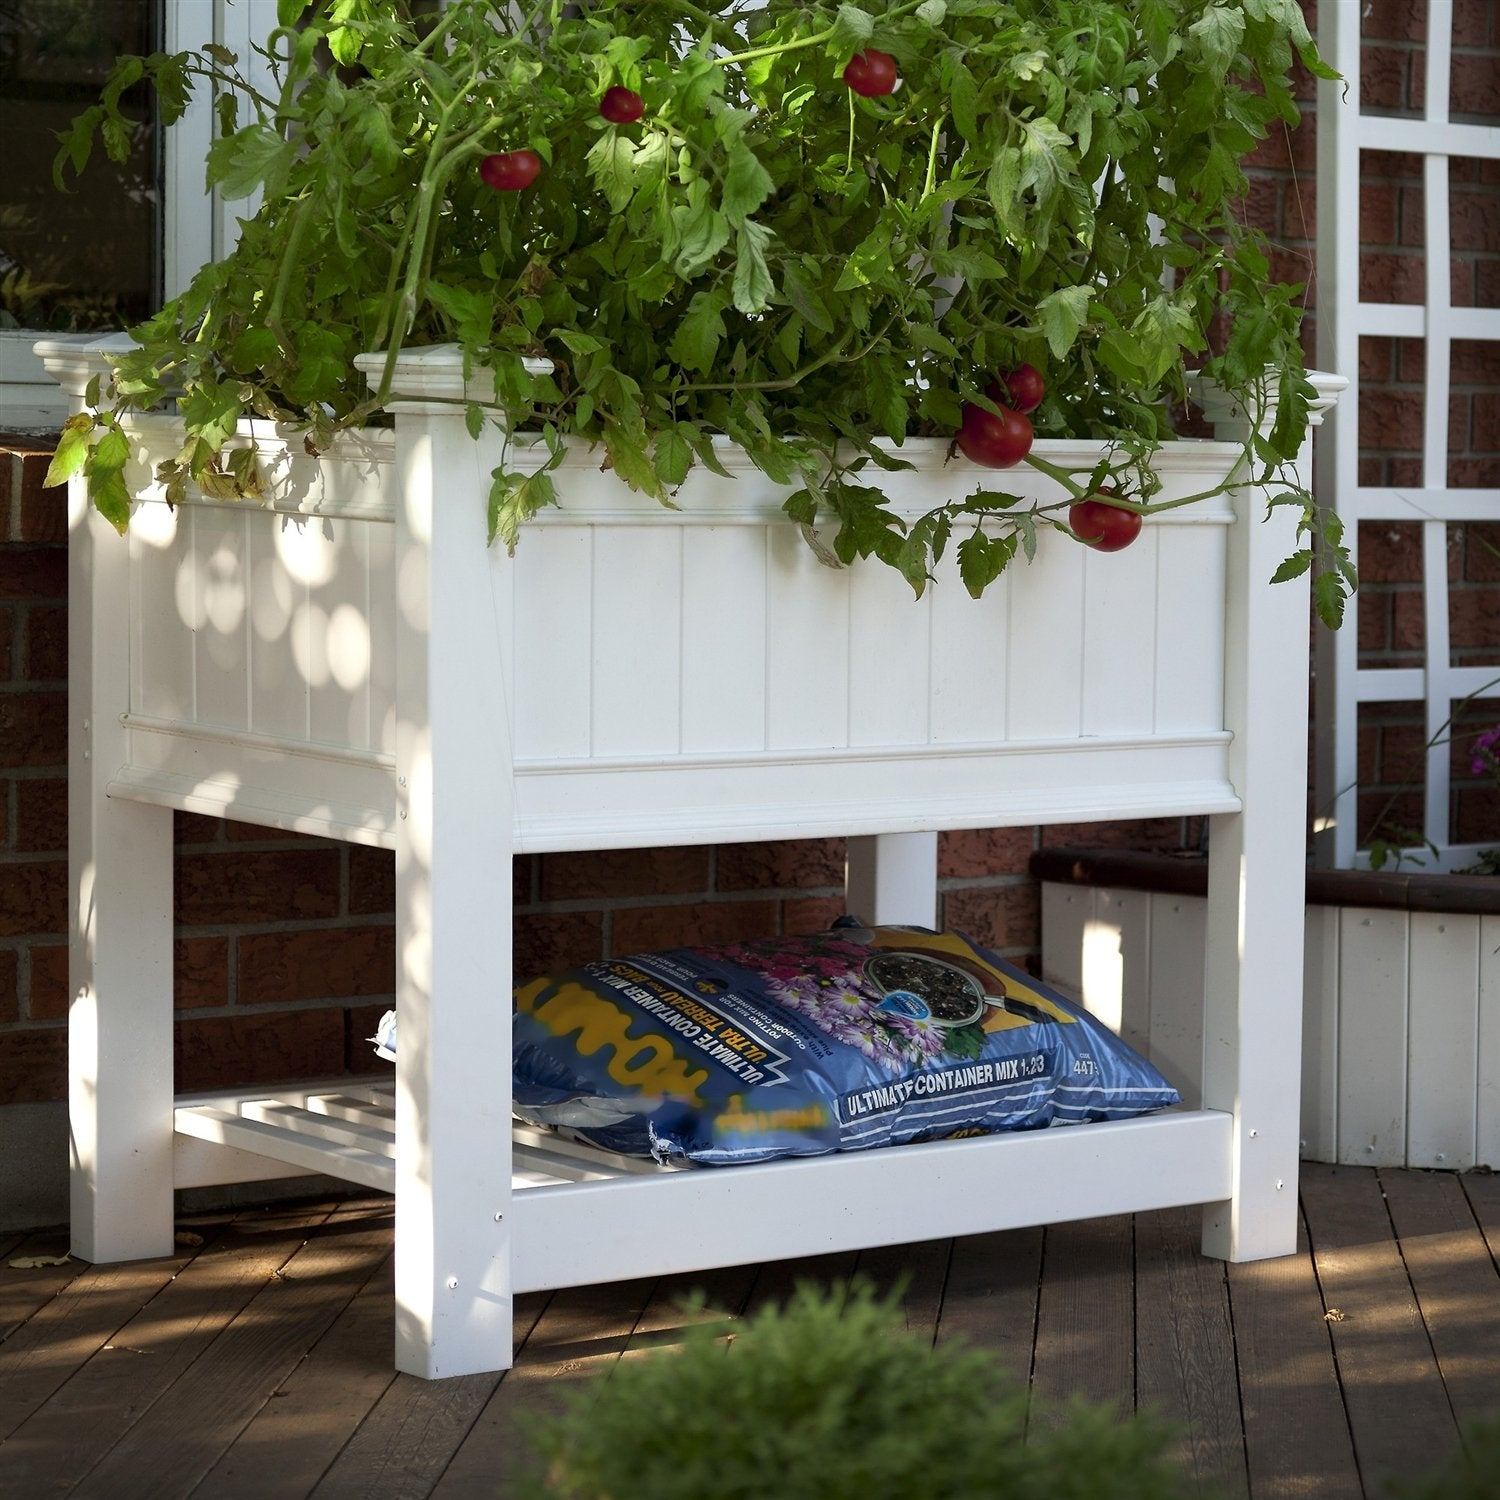 Elevated Planter Raised Grow Bed in White Vinyl